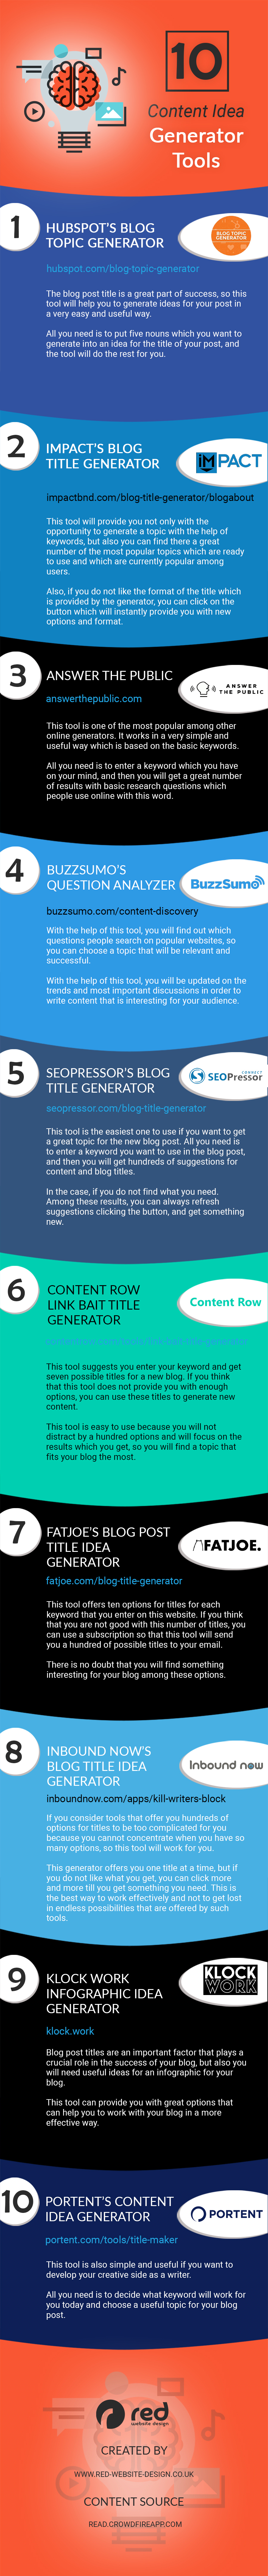 Infographic lists content idea generator apps